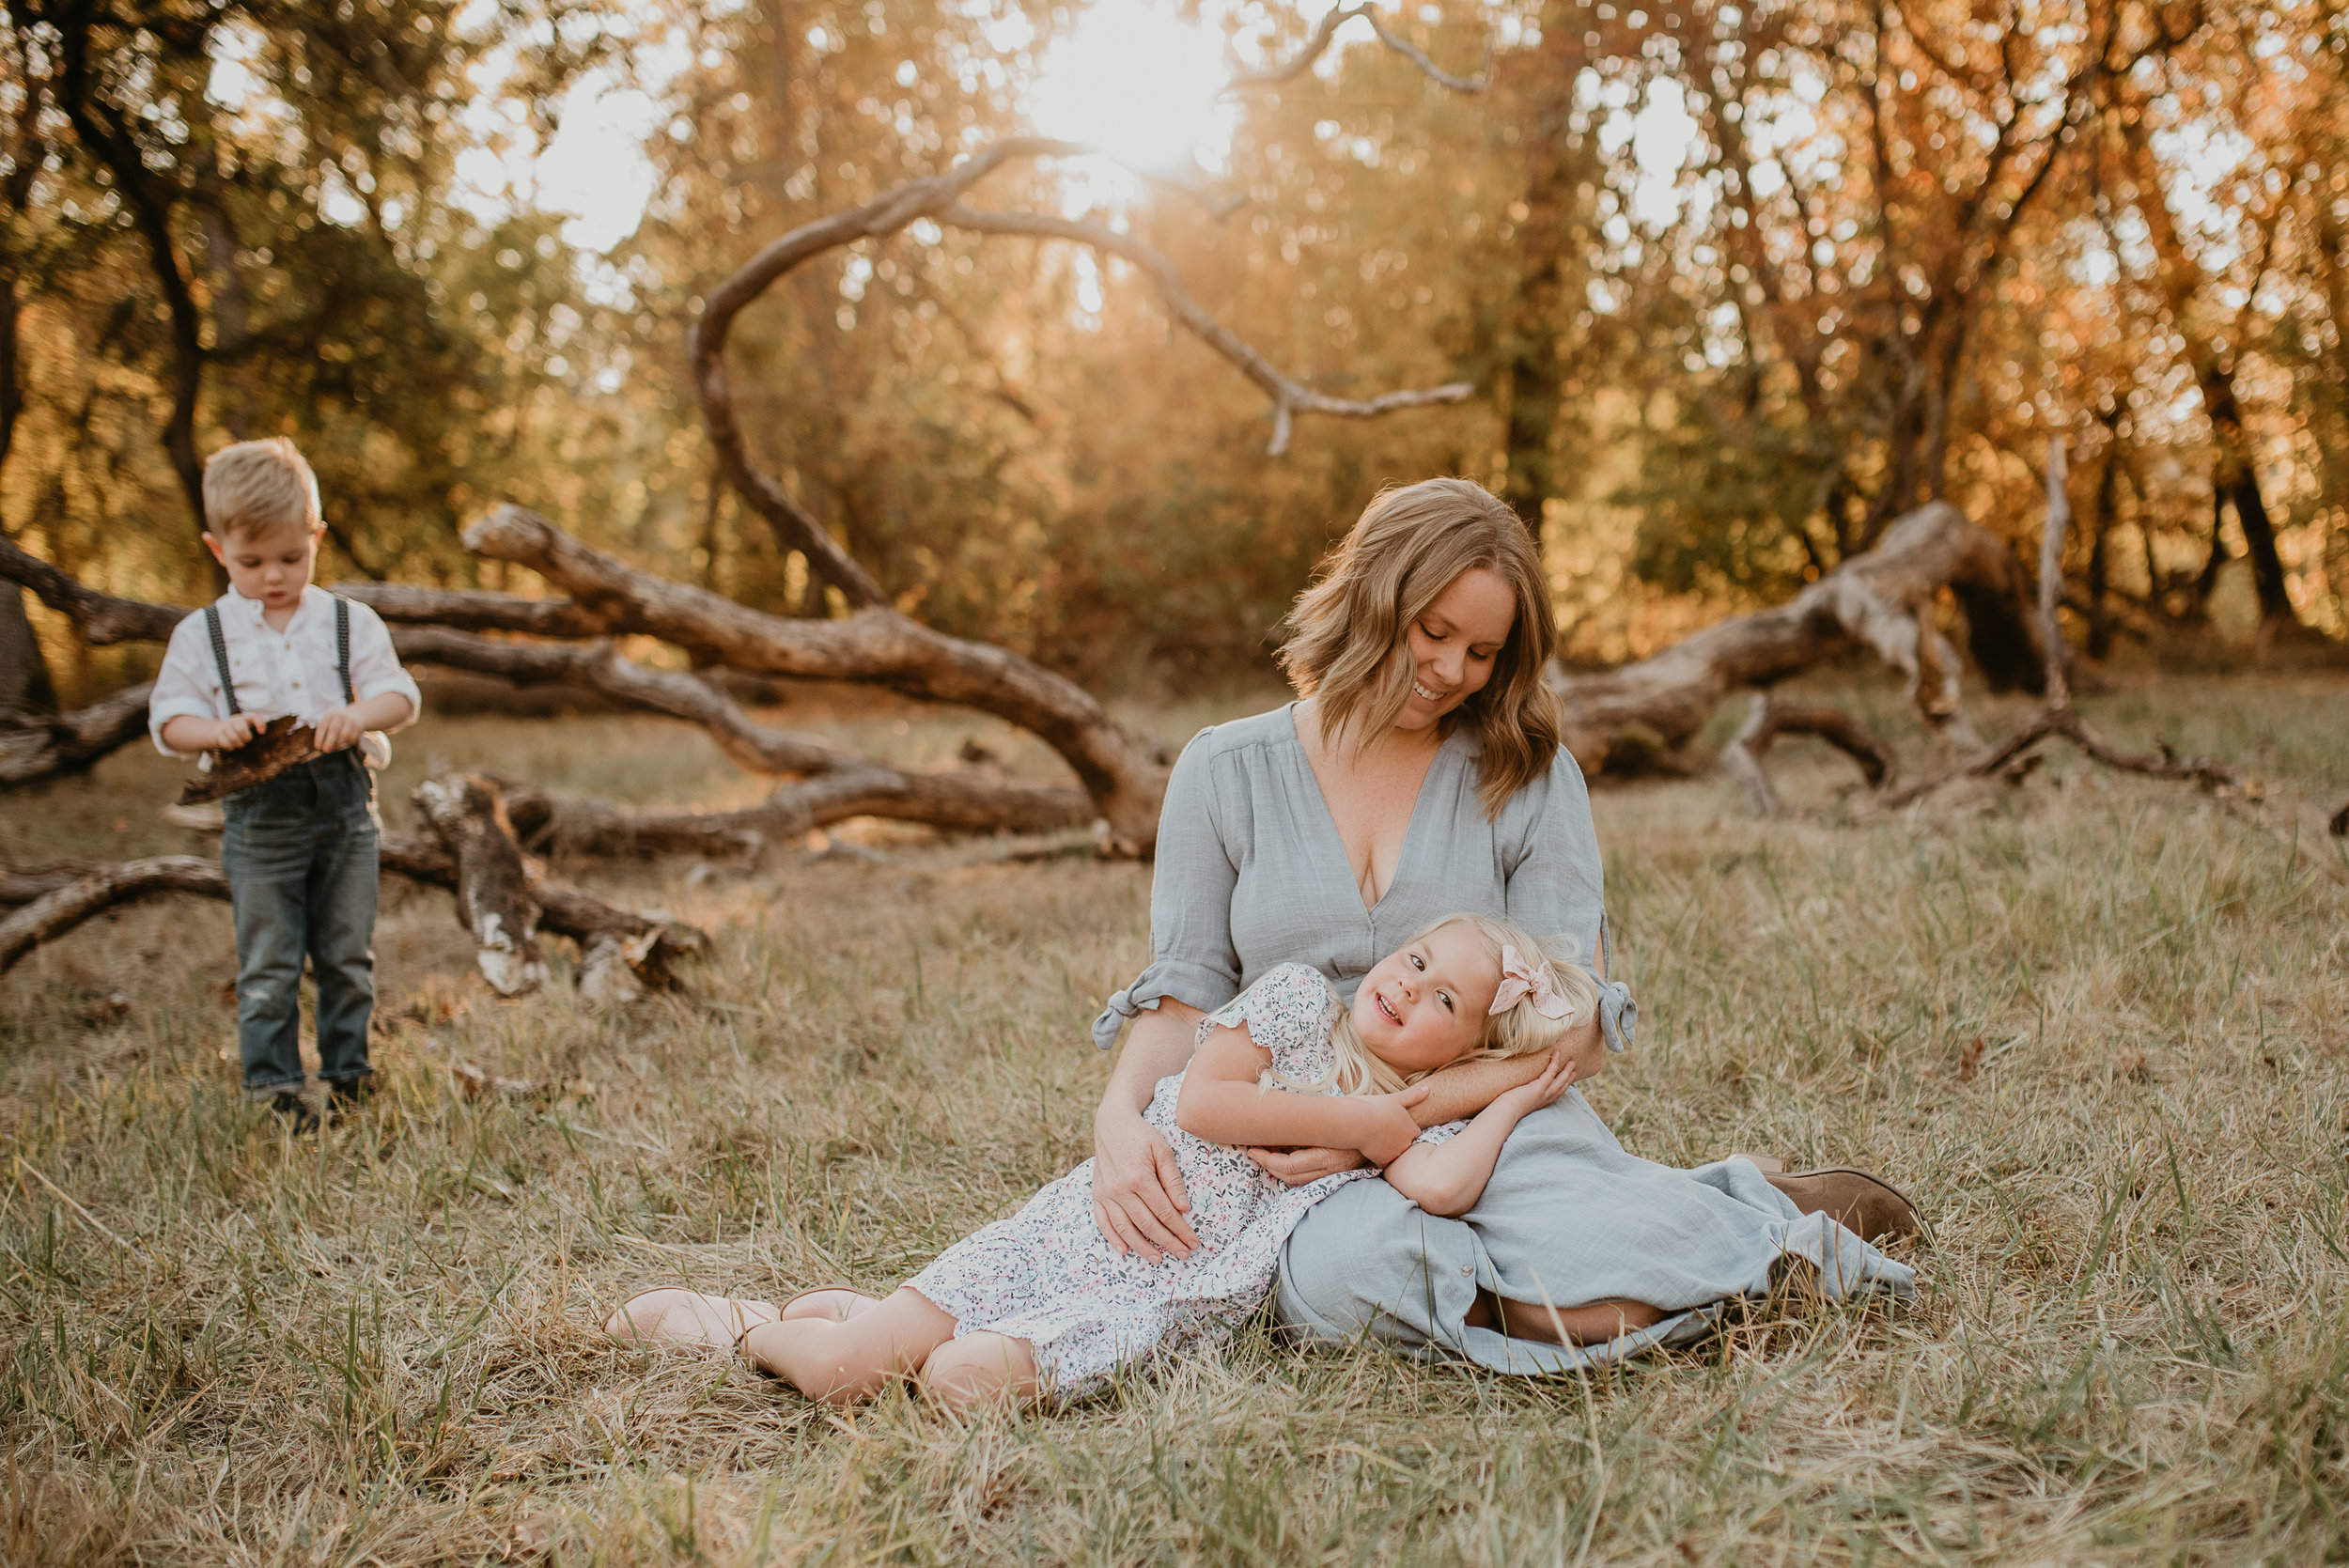 Kids, Families, Seniors, Maternity, Couples: $300 - Includes Session time at a location of your choice, (outdoor location or in your home) my time spent carefully reviewing and post processing your images, and your edited digital photos delivered to you to print and share however you choose.